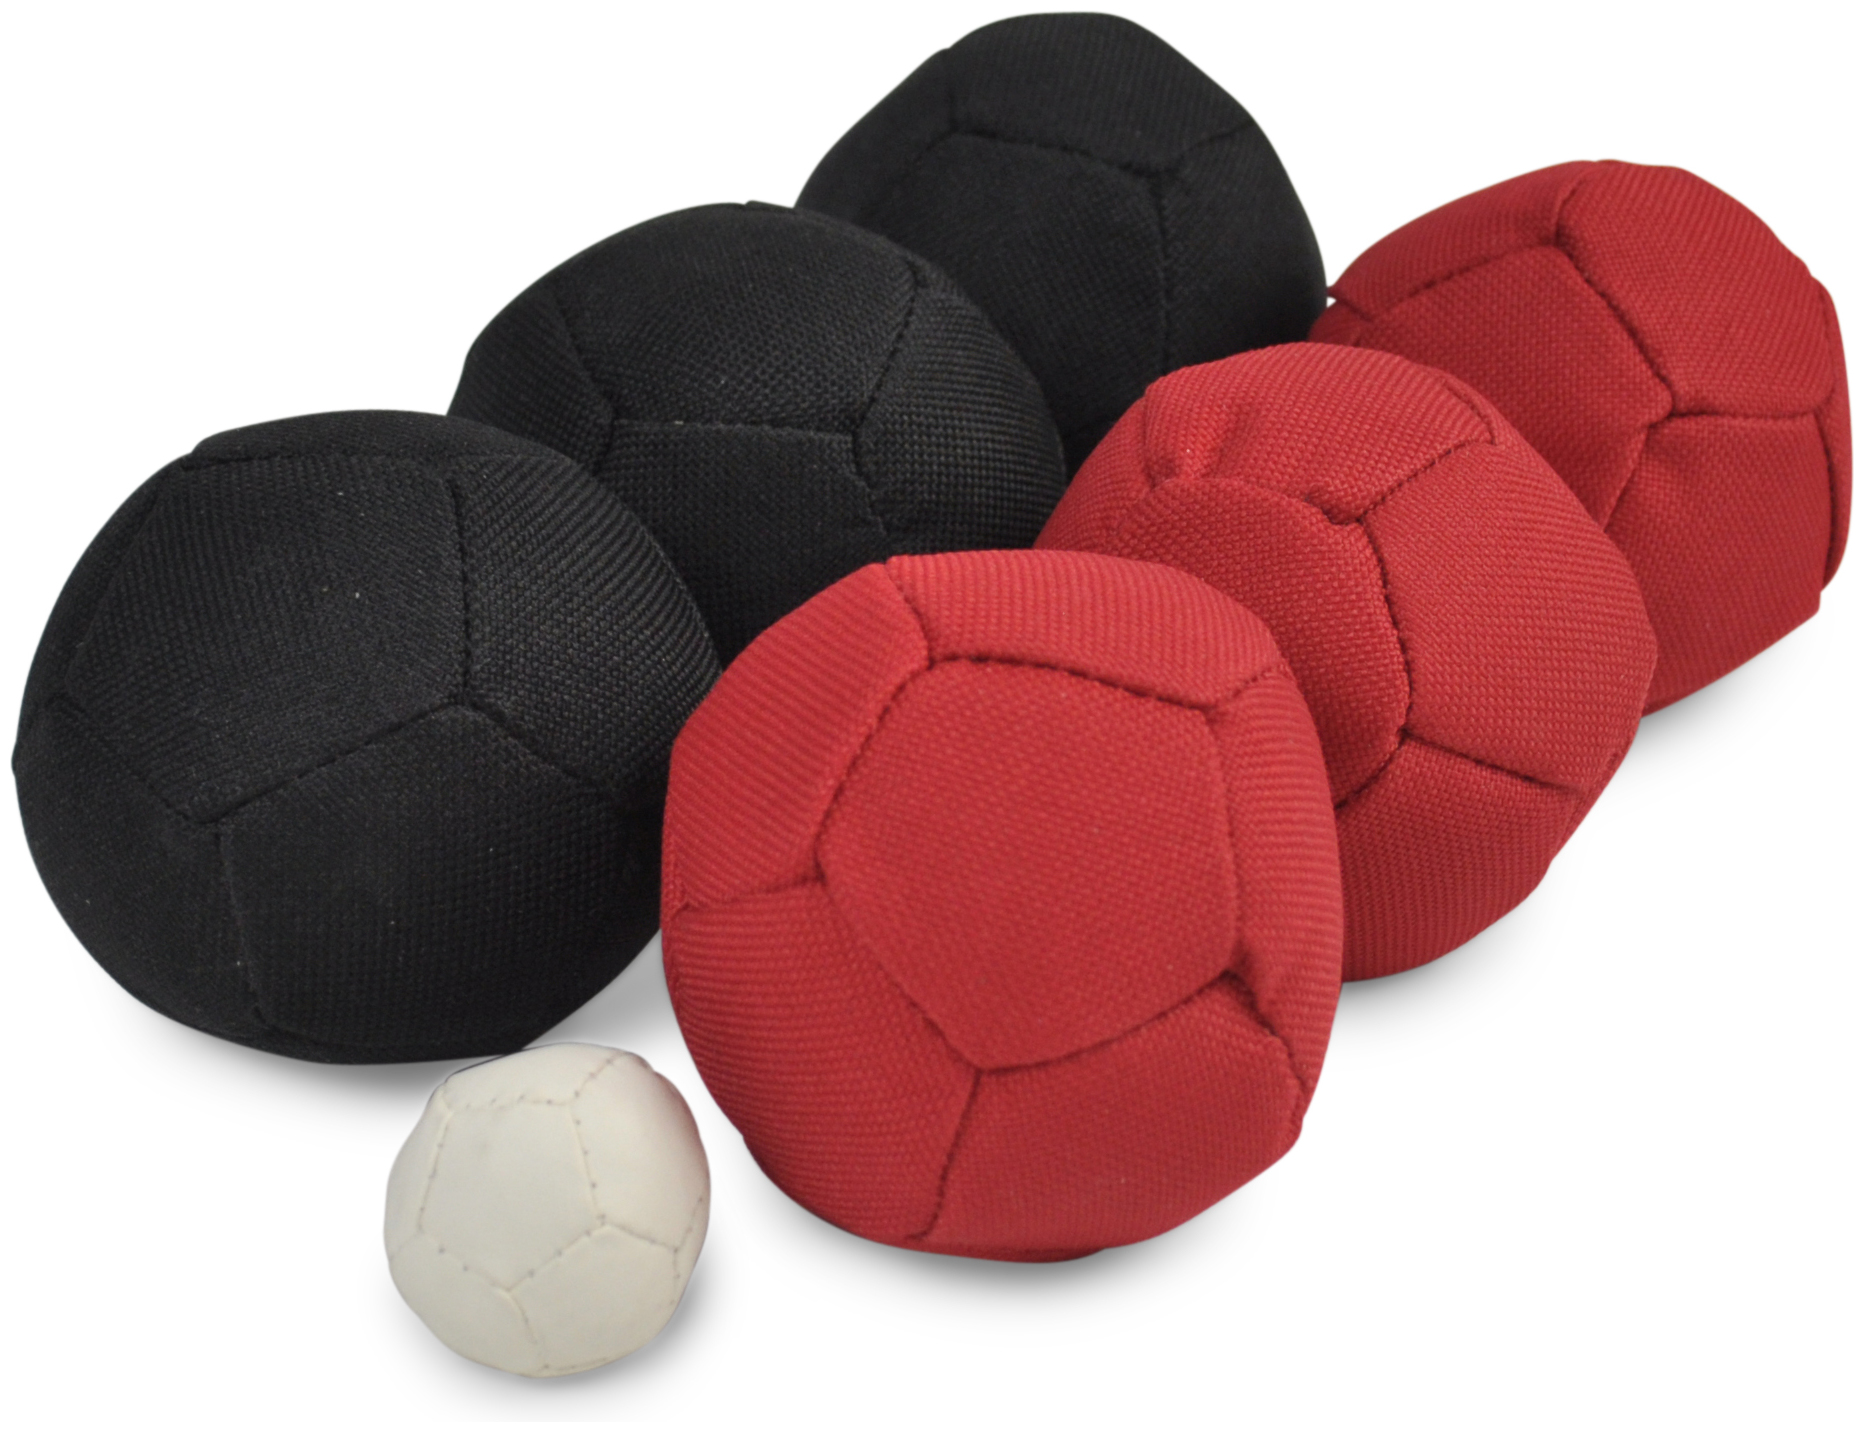 boule och frisbee licensierad produkt boule soft. Black Bedroom Furniture Sets. Home Design Ideas